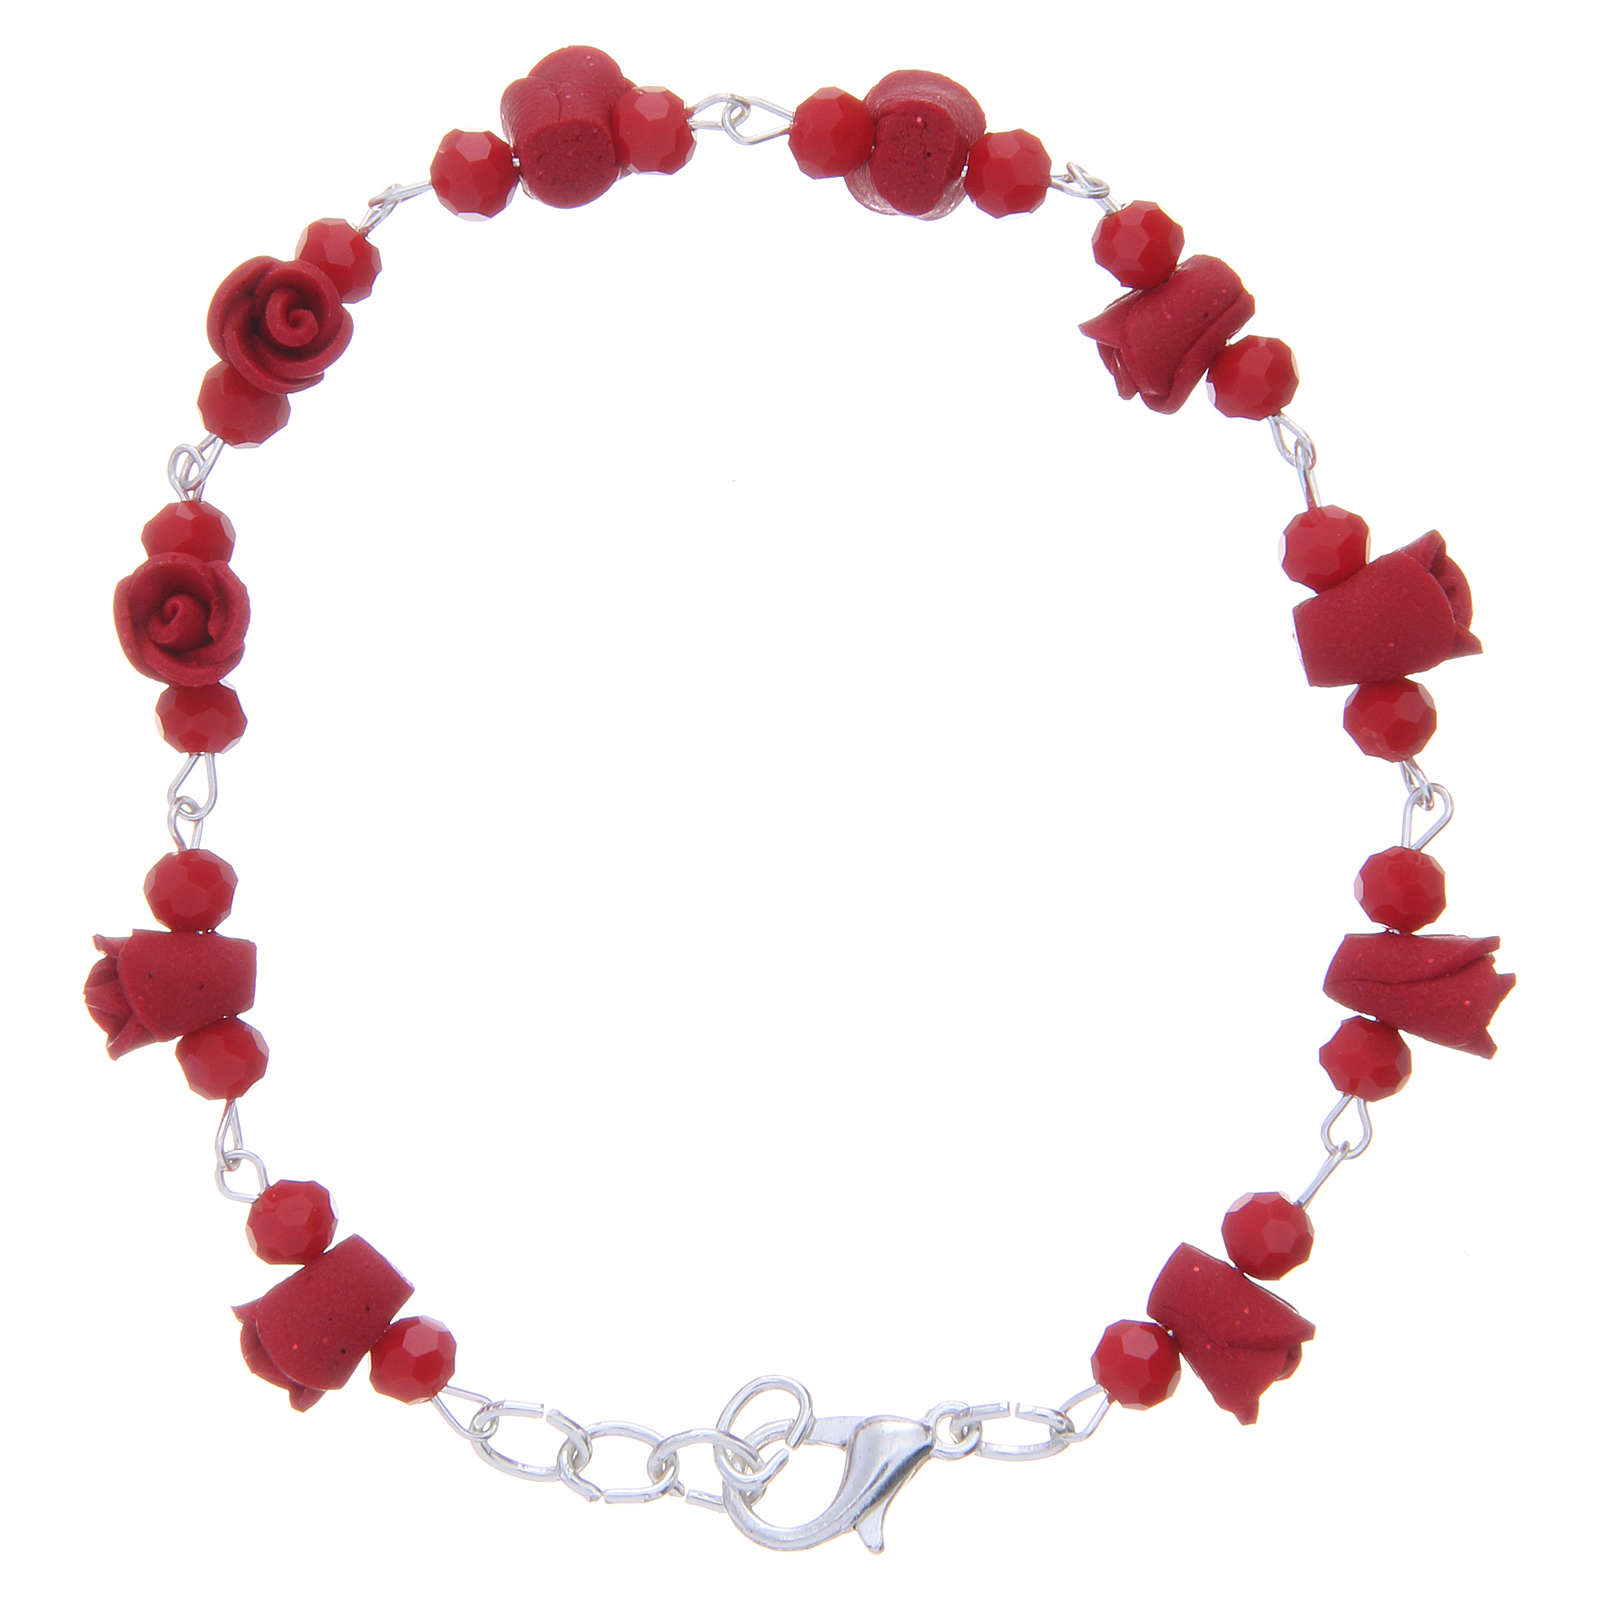 Medjugorje Rosary bracelet with red ceramic roses and grains in crystal 4